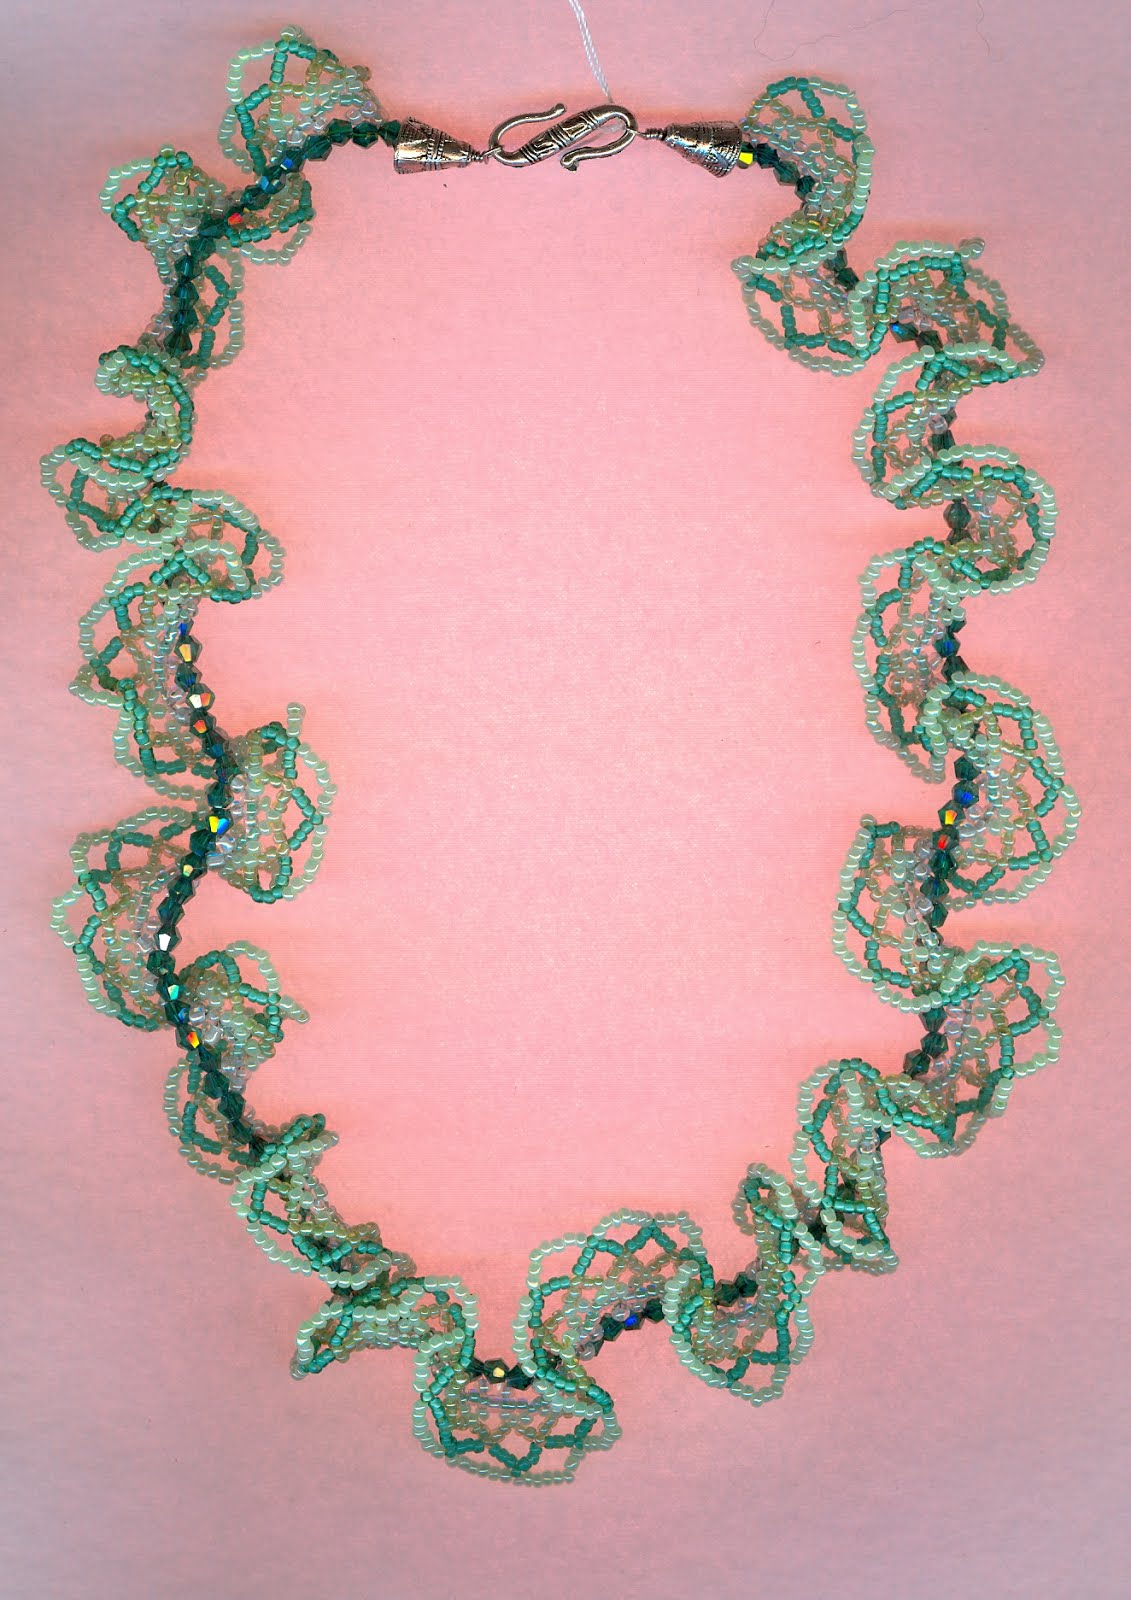 Curley necklace